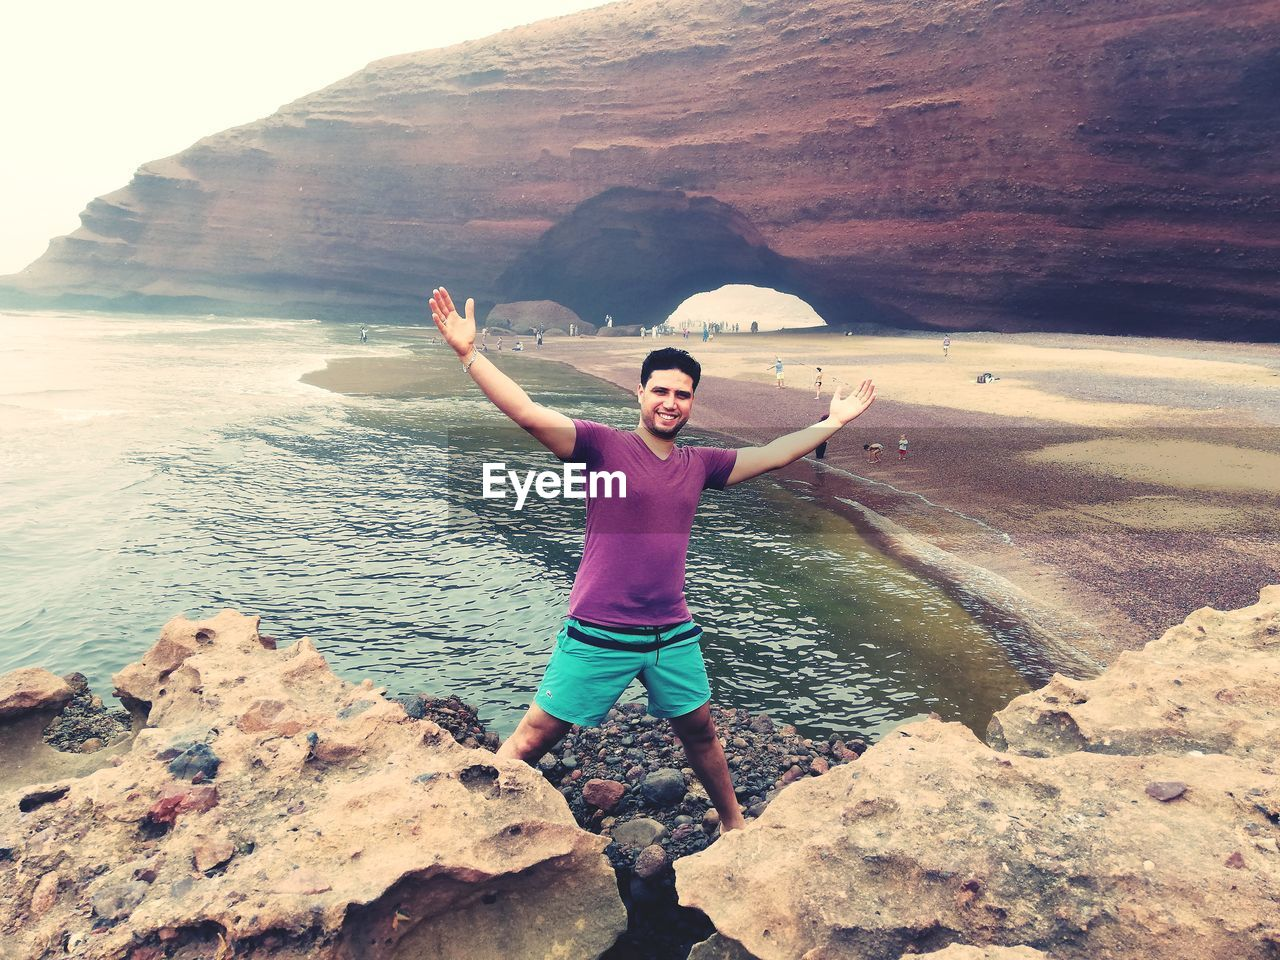 one person, real people, solid, water, human arm, leisure activity, rock, rock - object, lifestyles, beauty in nature, full length, scenics - nature, sea, rock formation, limb, nature, young men, casual clothing, arms outstretched, freedom, outdoors, arms raised